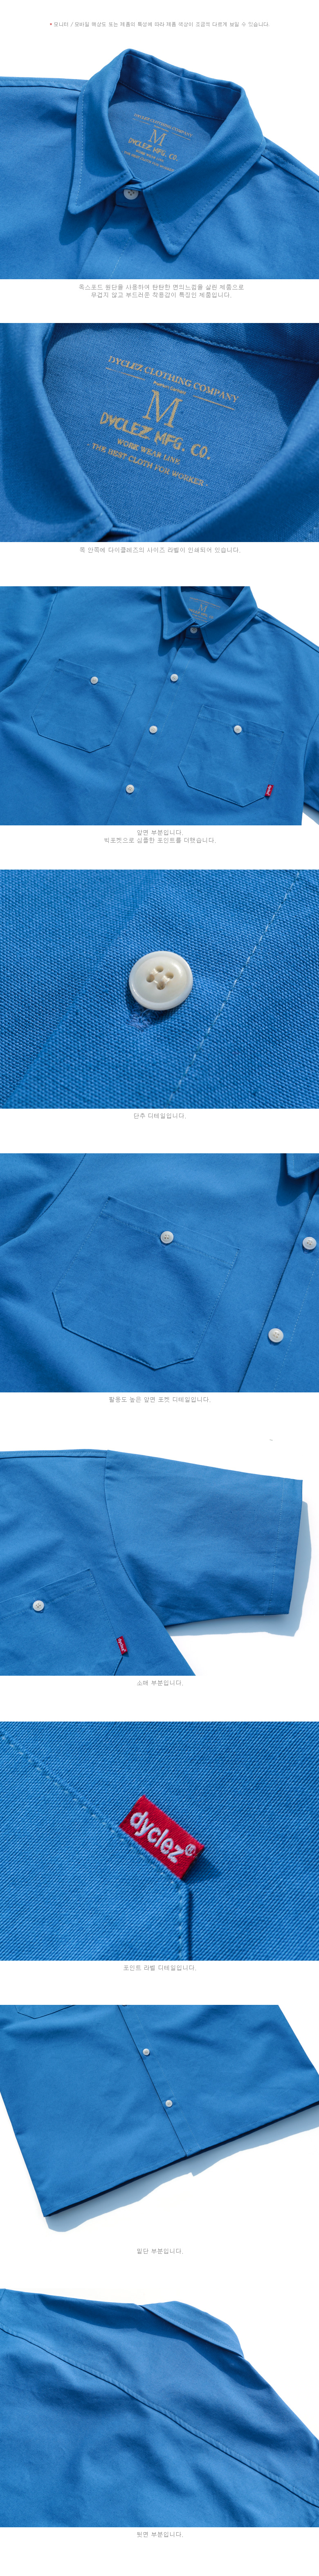 20180412_dy_twopocket_shirt_blue_uk_02.jpg